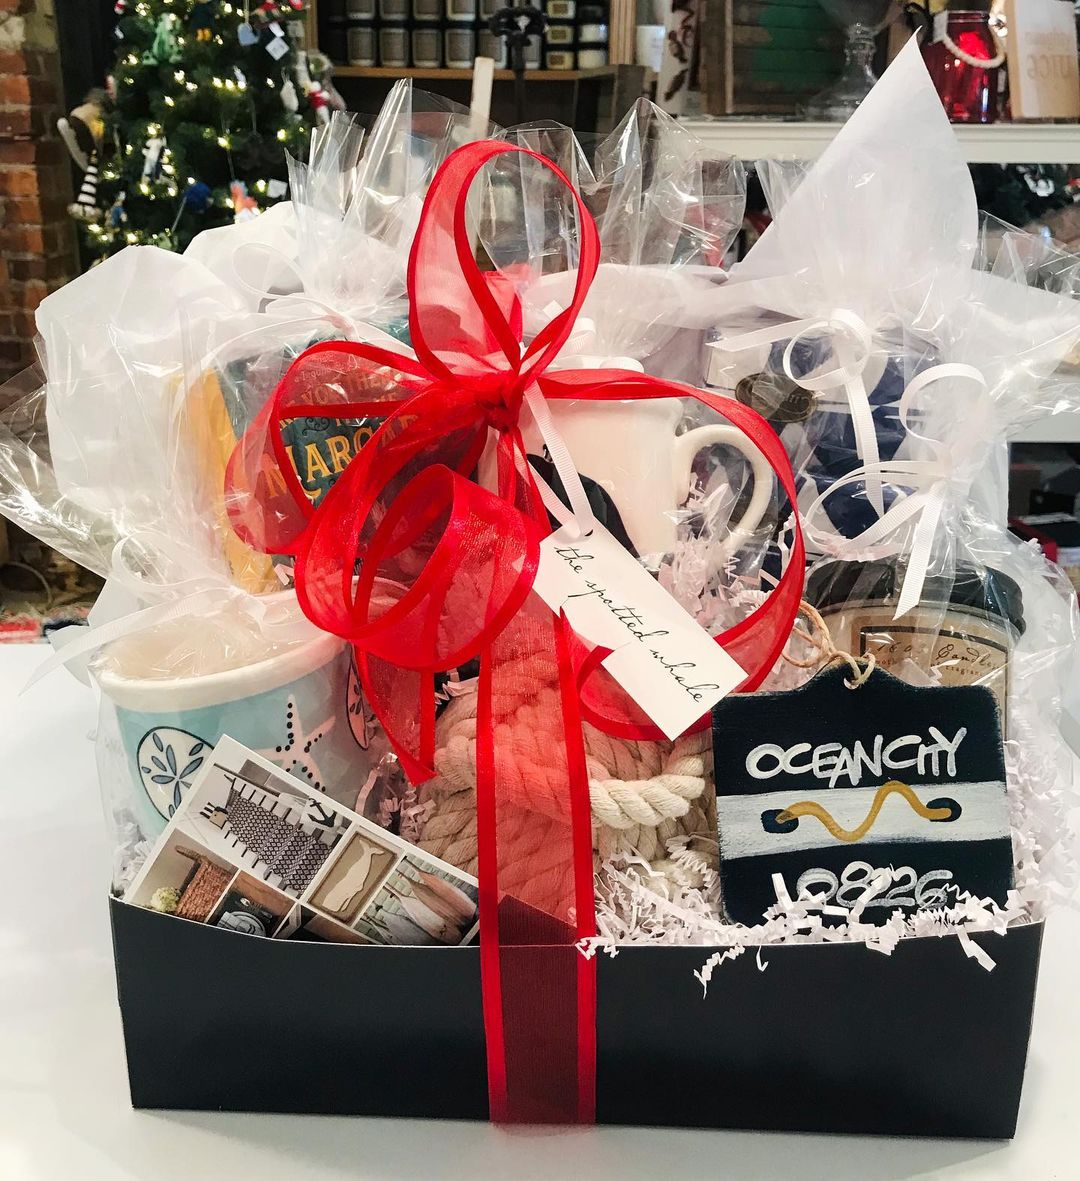 LBI Last minute Christmas shopping? We offer complimentary gift wrapping!           …